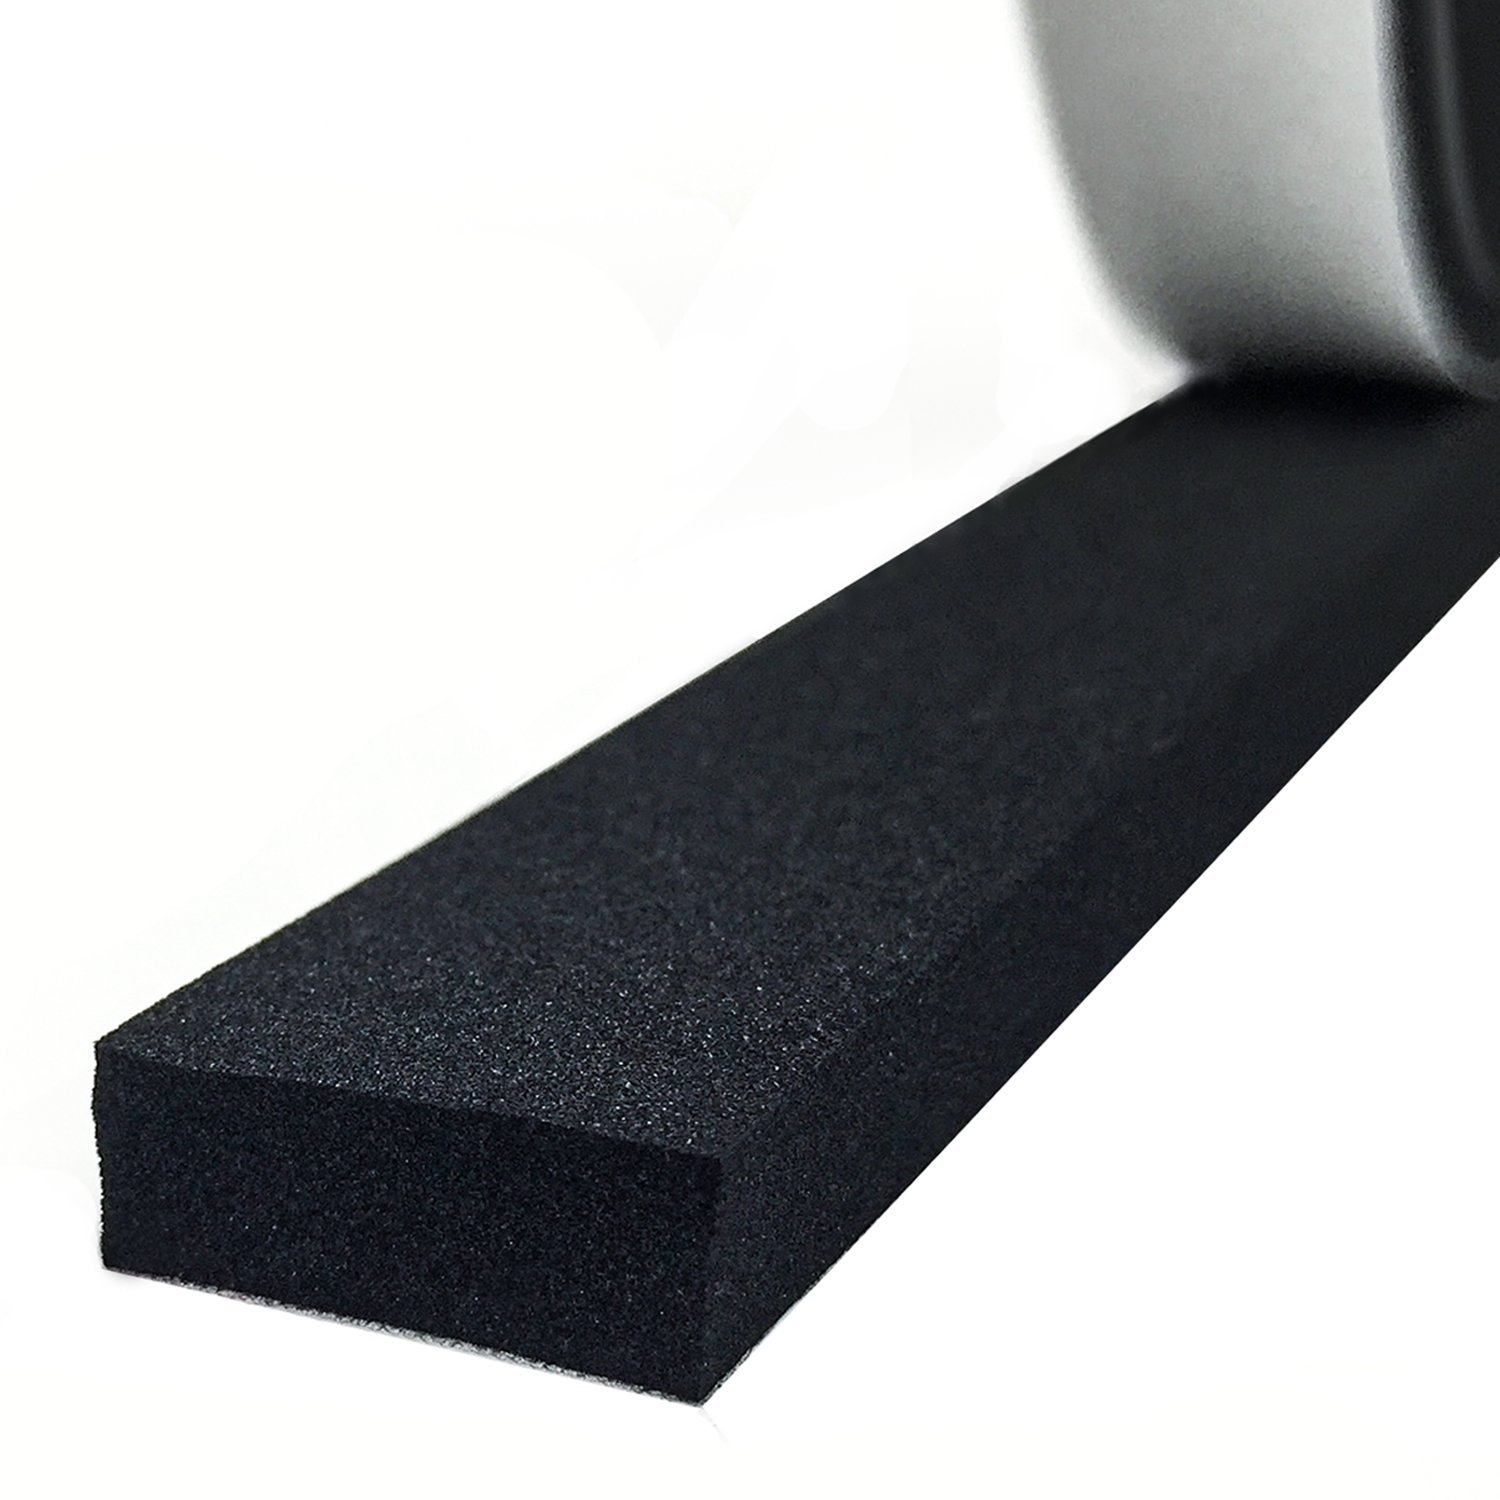 Adhesive Foam Tape, High Density Sound Proof Insulation Closed Cell Foam Seal Weather Stripping 1/4 Inch Wide X 1/8 Inch Thick X 50 Feet Long (1/4in 1/8in) by MAGZO (Image #1)